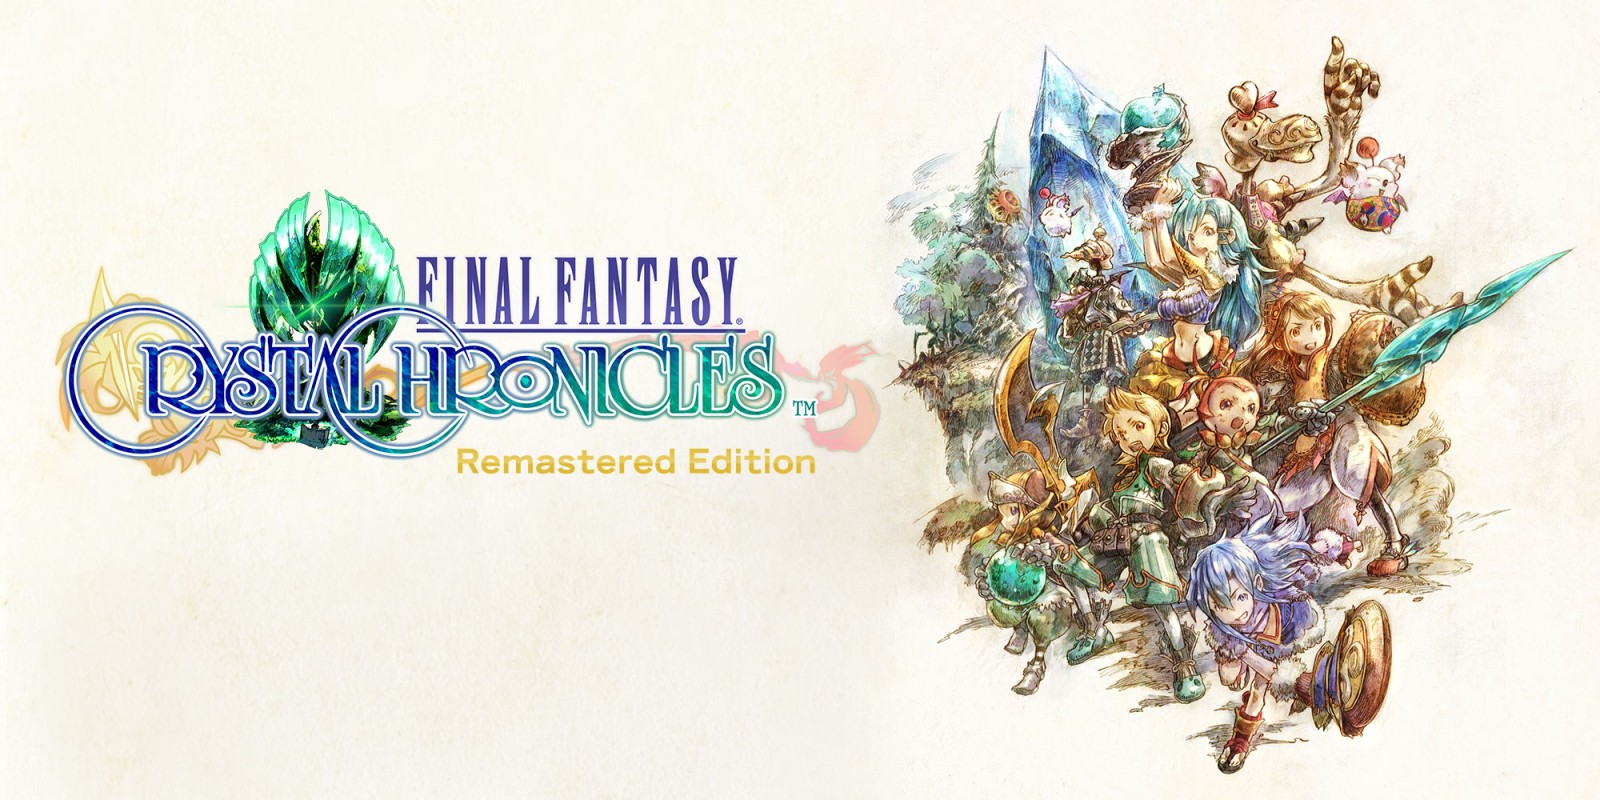 FINAL FANTASY® CRYSTAL CHRONICLES™ Remastered Edition